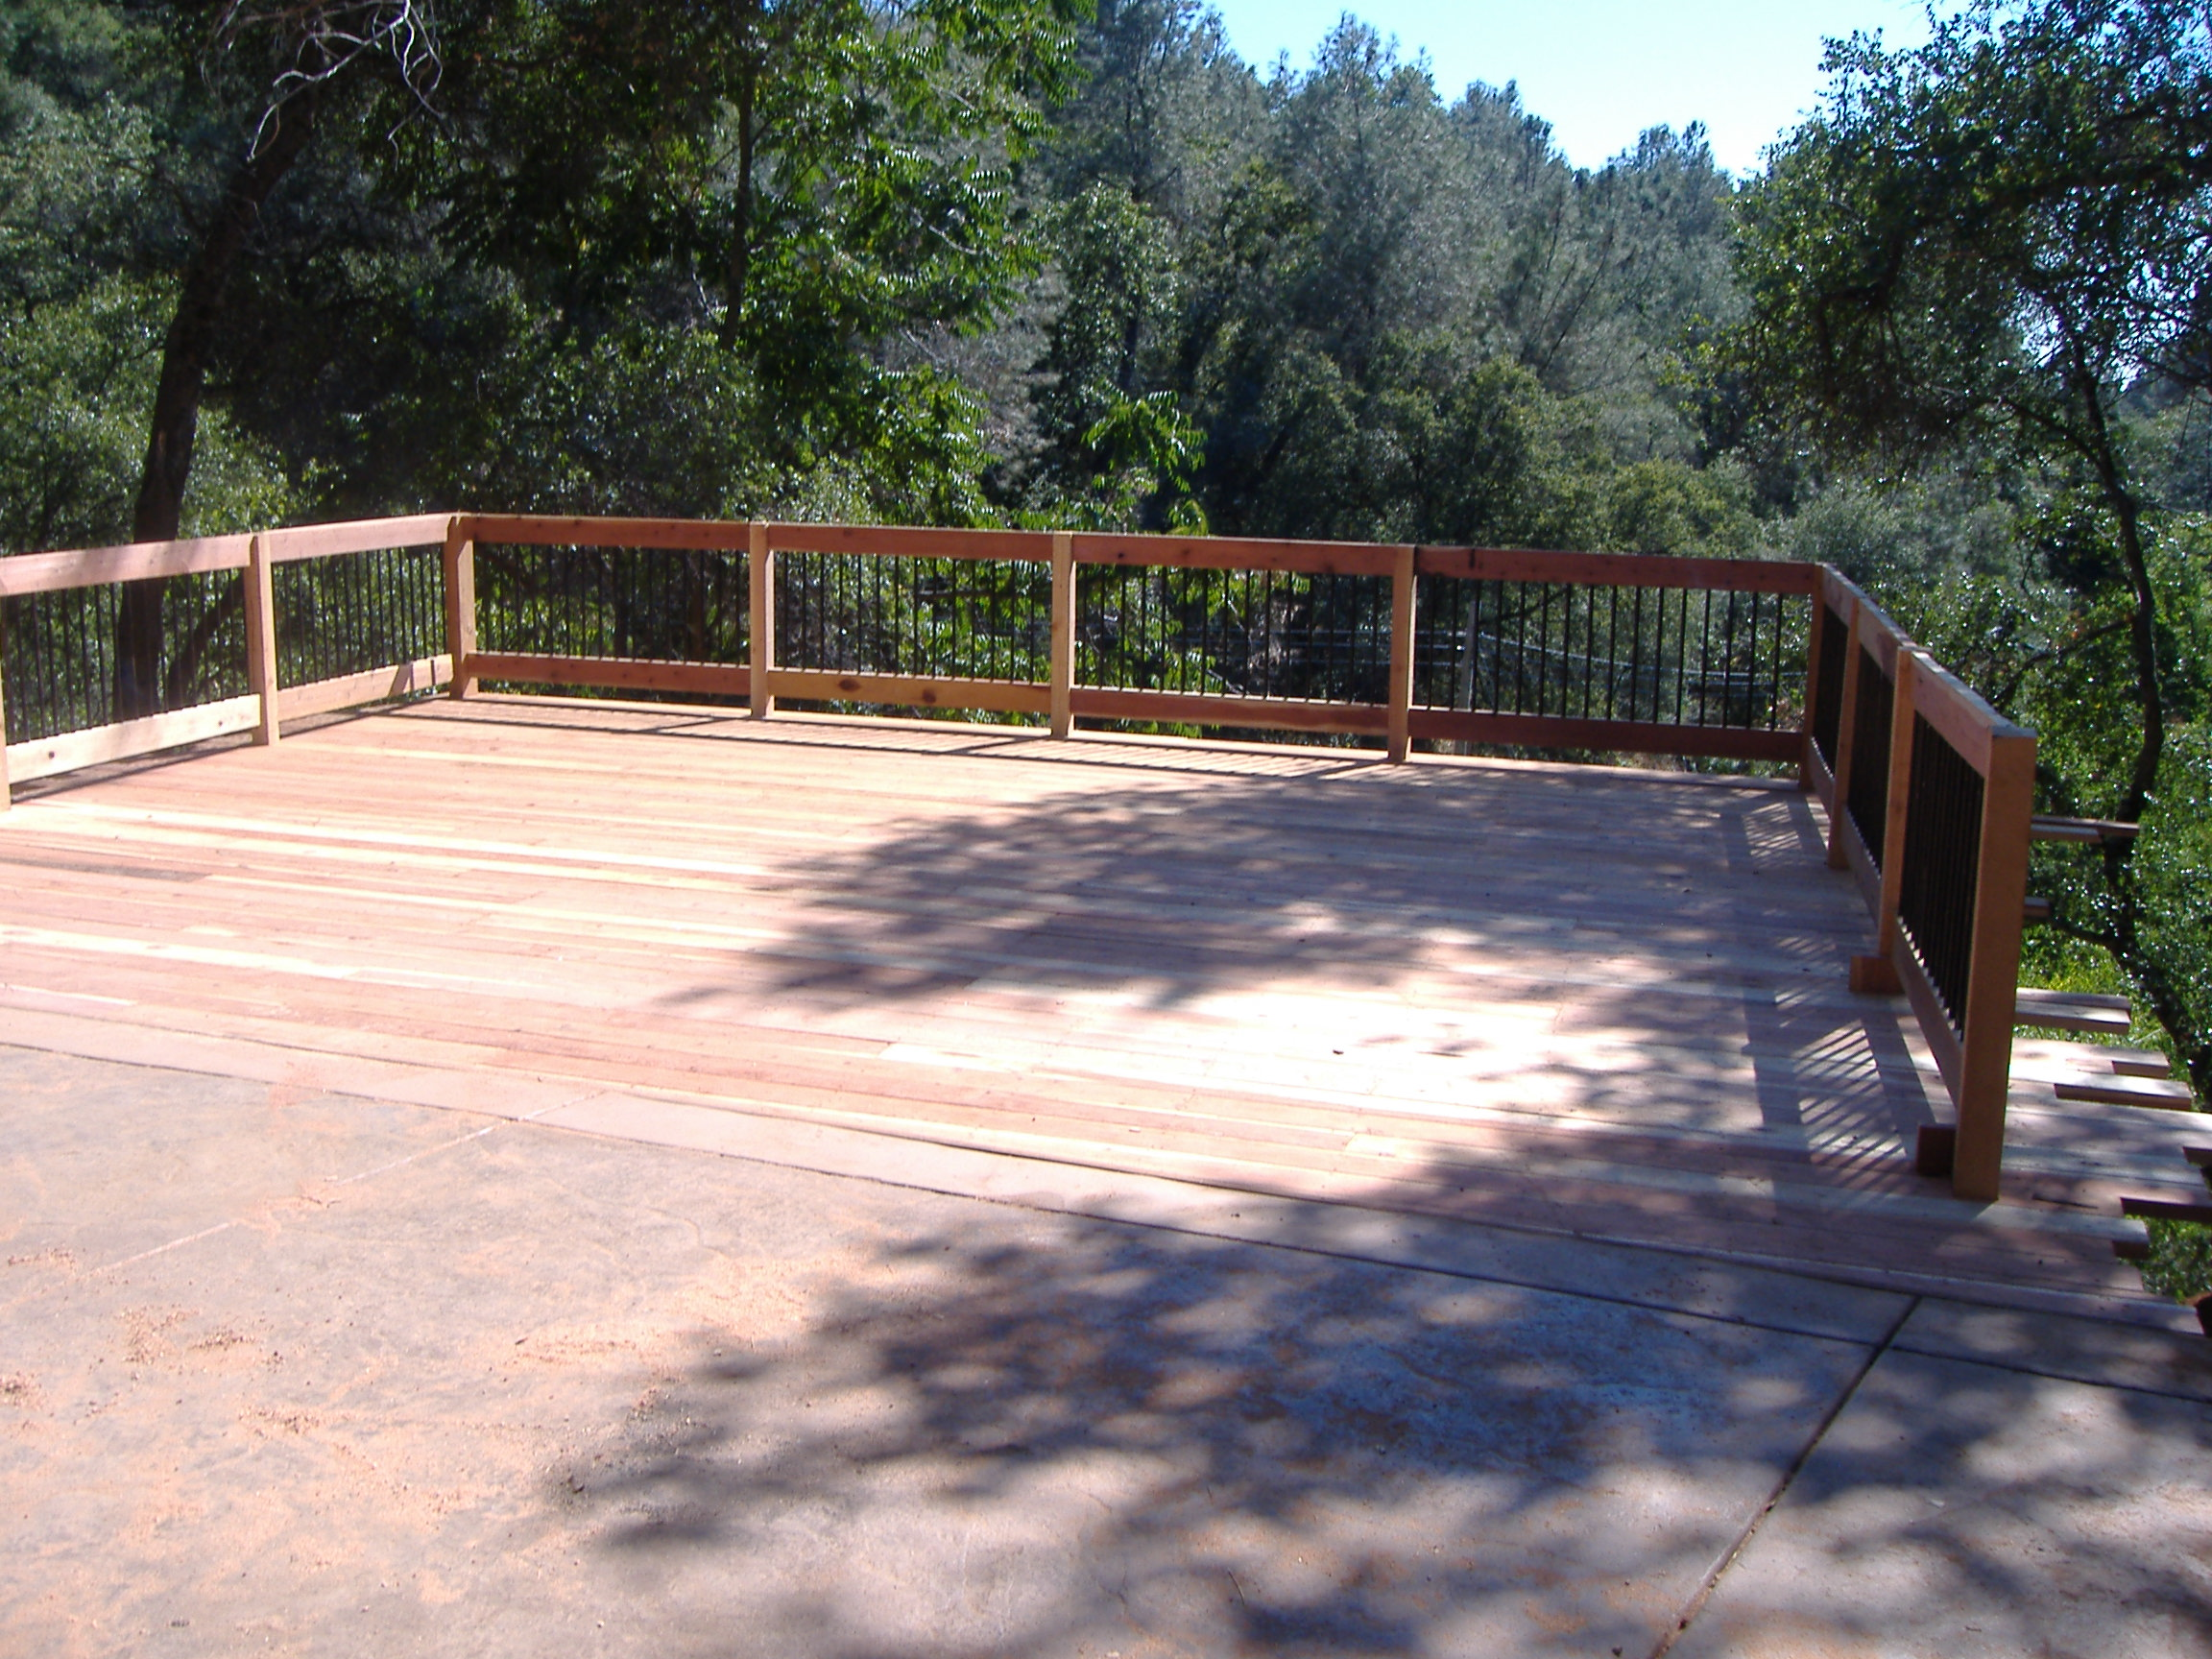 Building a 24' x 20' deck on steep slope